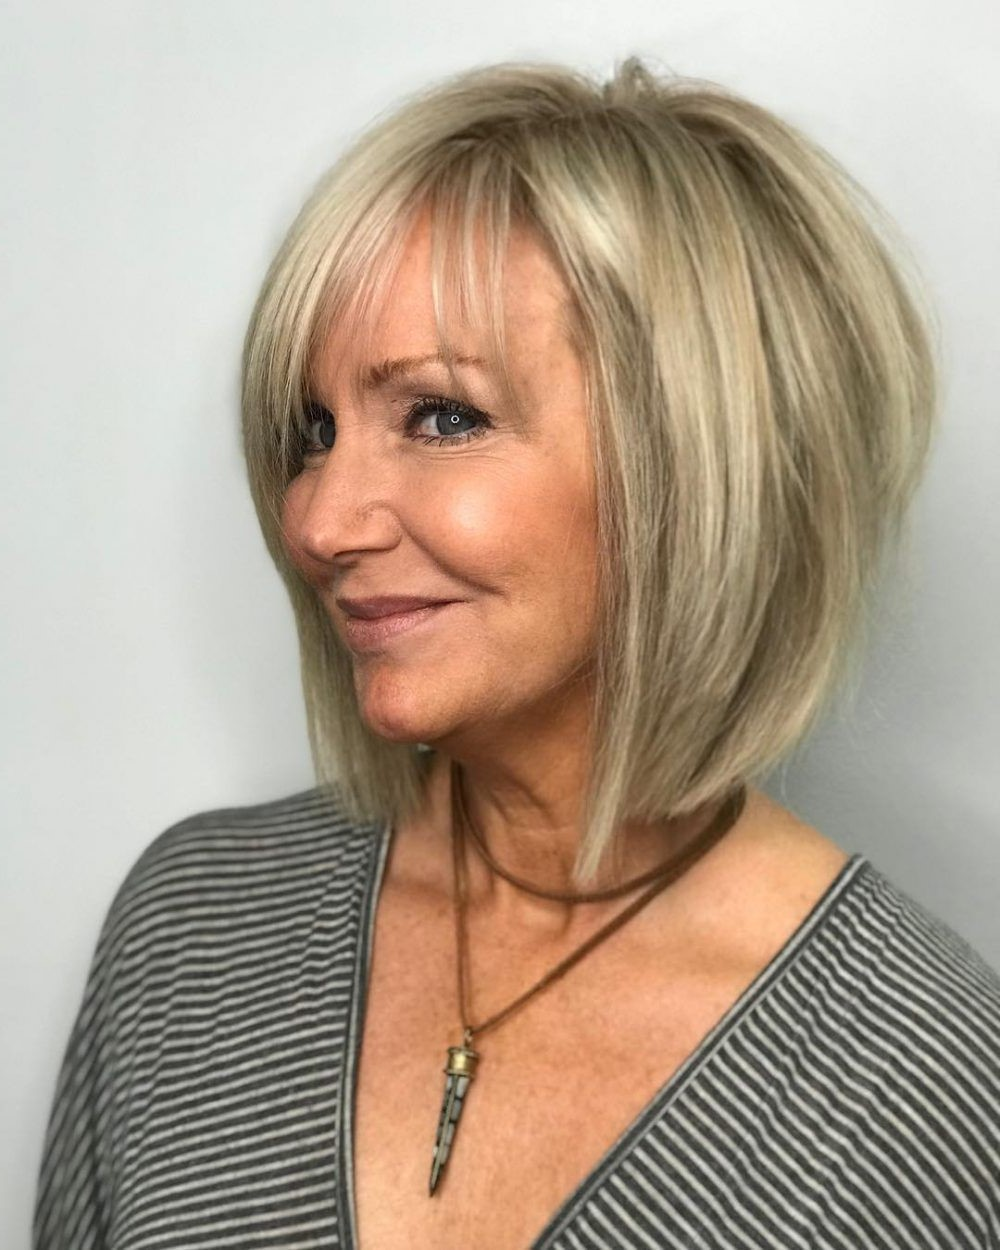 Blond balayage bob with angled layers | Short Hairstyles For Women Over 50 | Her Beauty